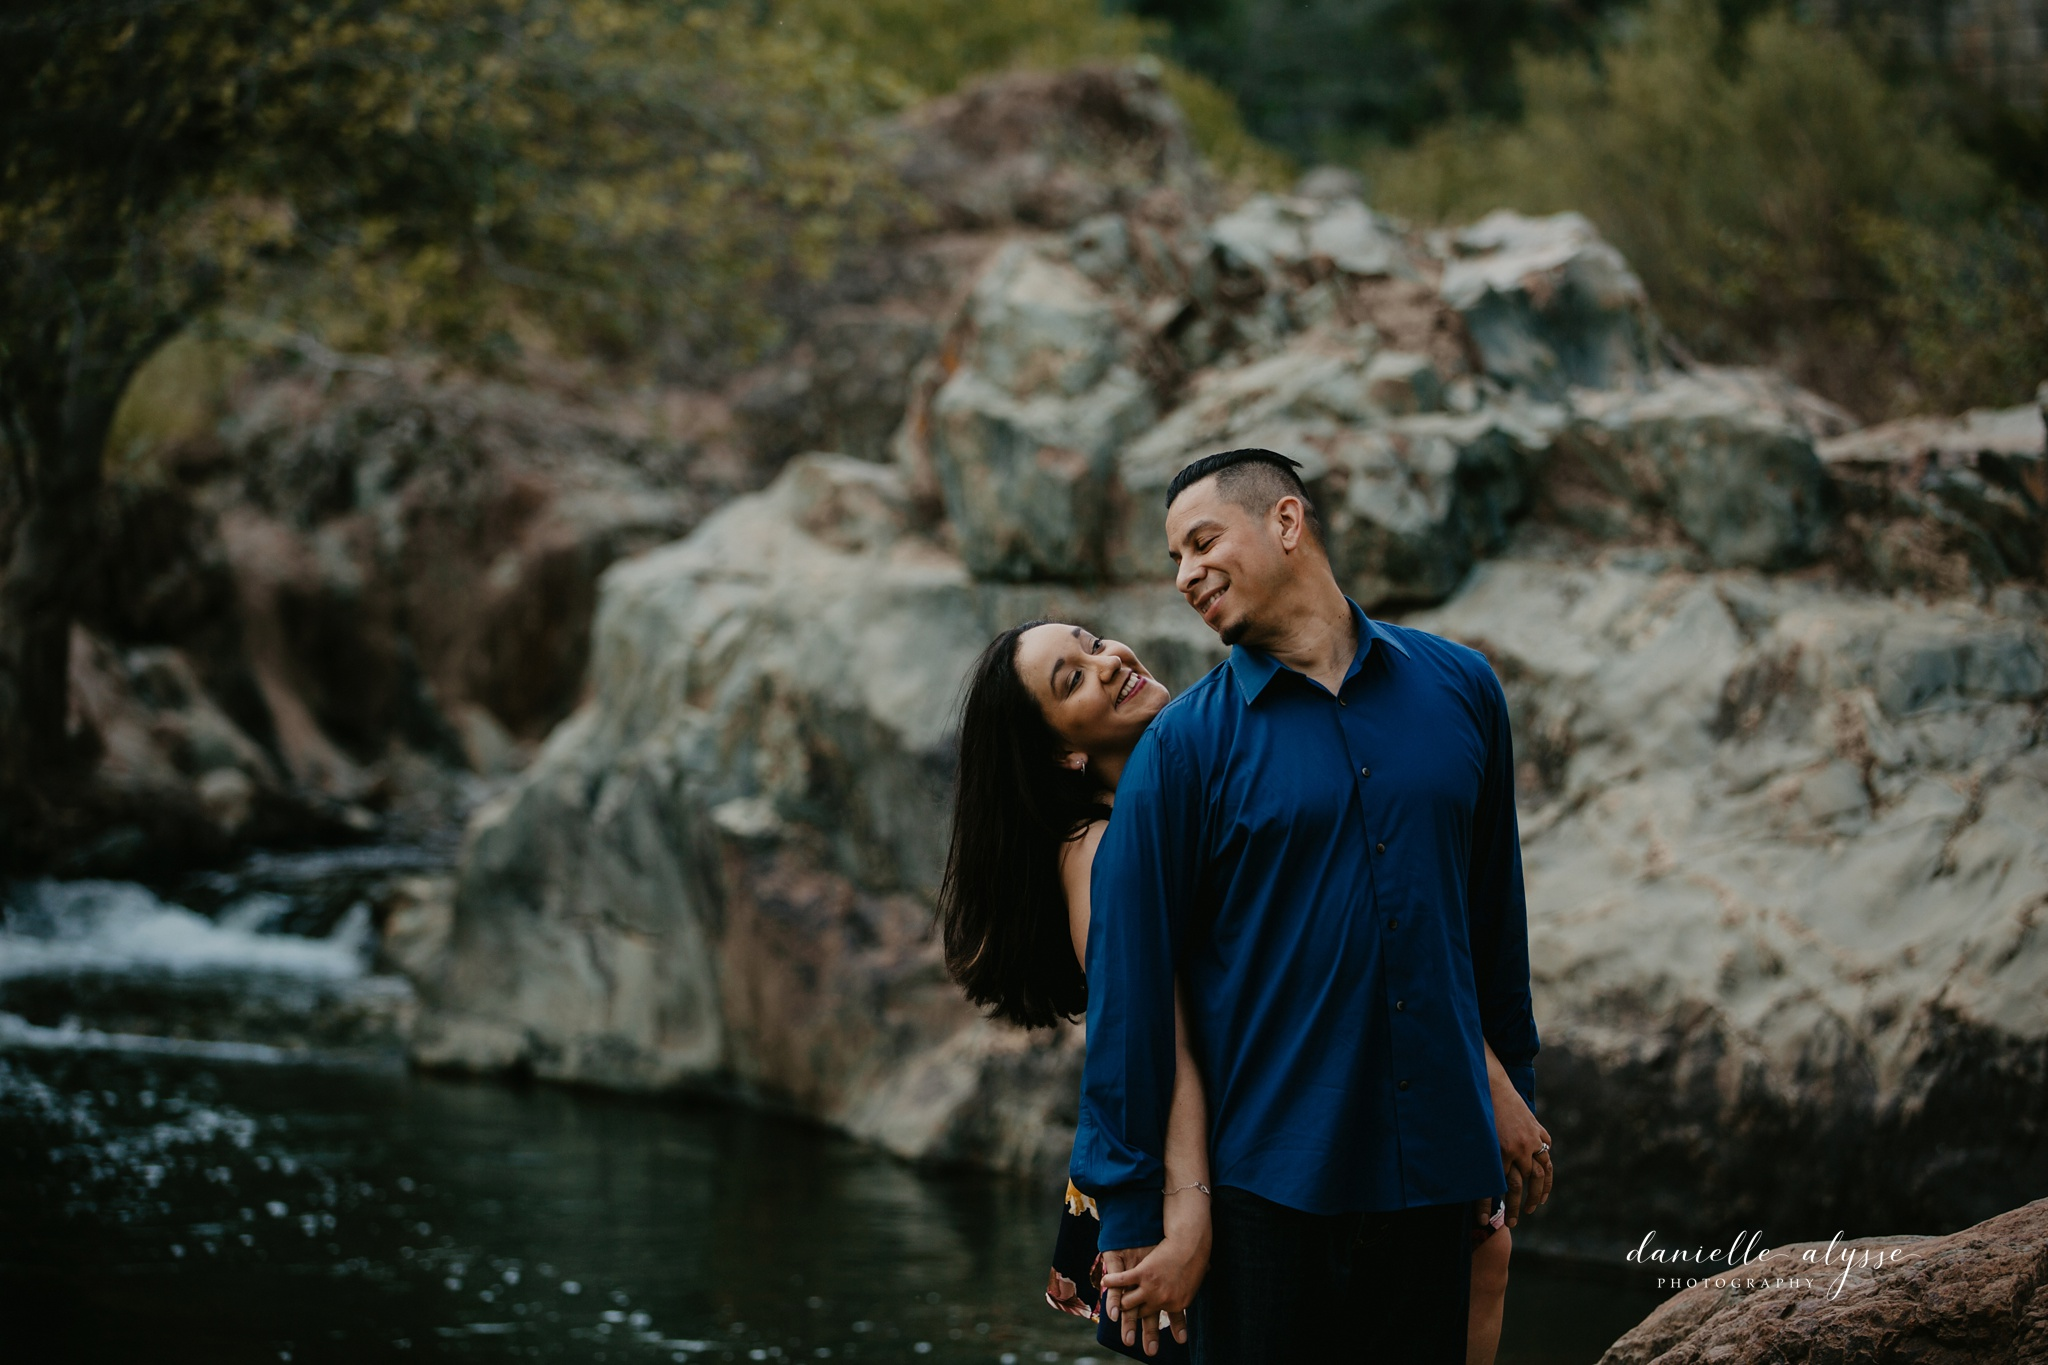 180425_engagement_monica_auburn_water_falls_auburn_danielle_alysse_photography_sacramento_photographer_blog_50_WEB.jpg